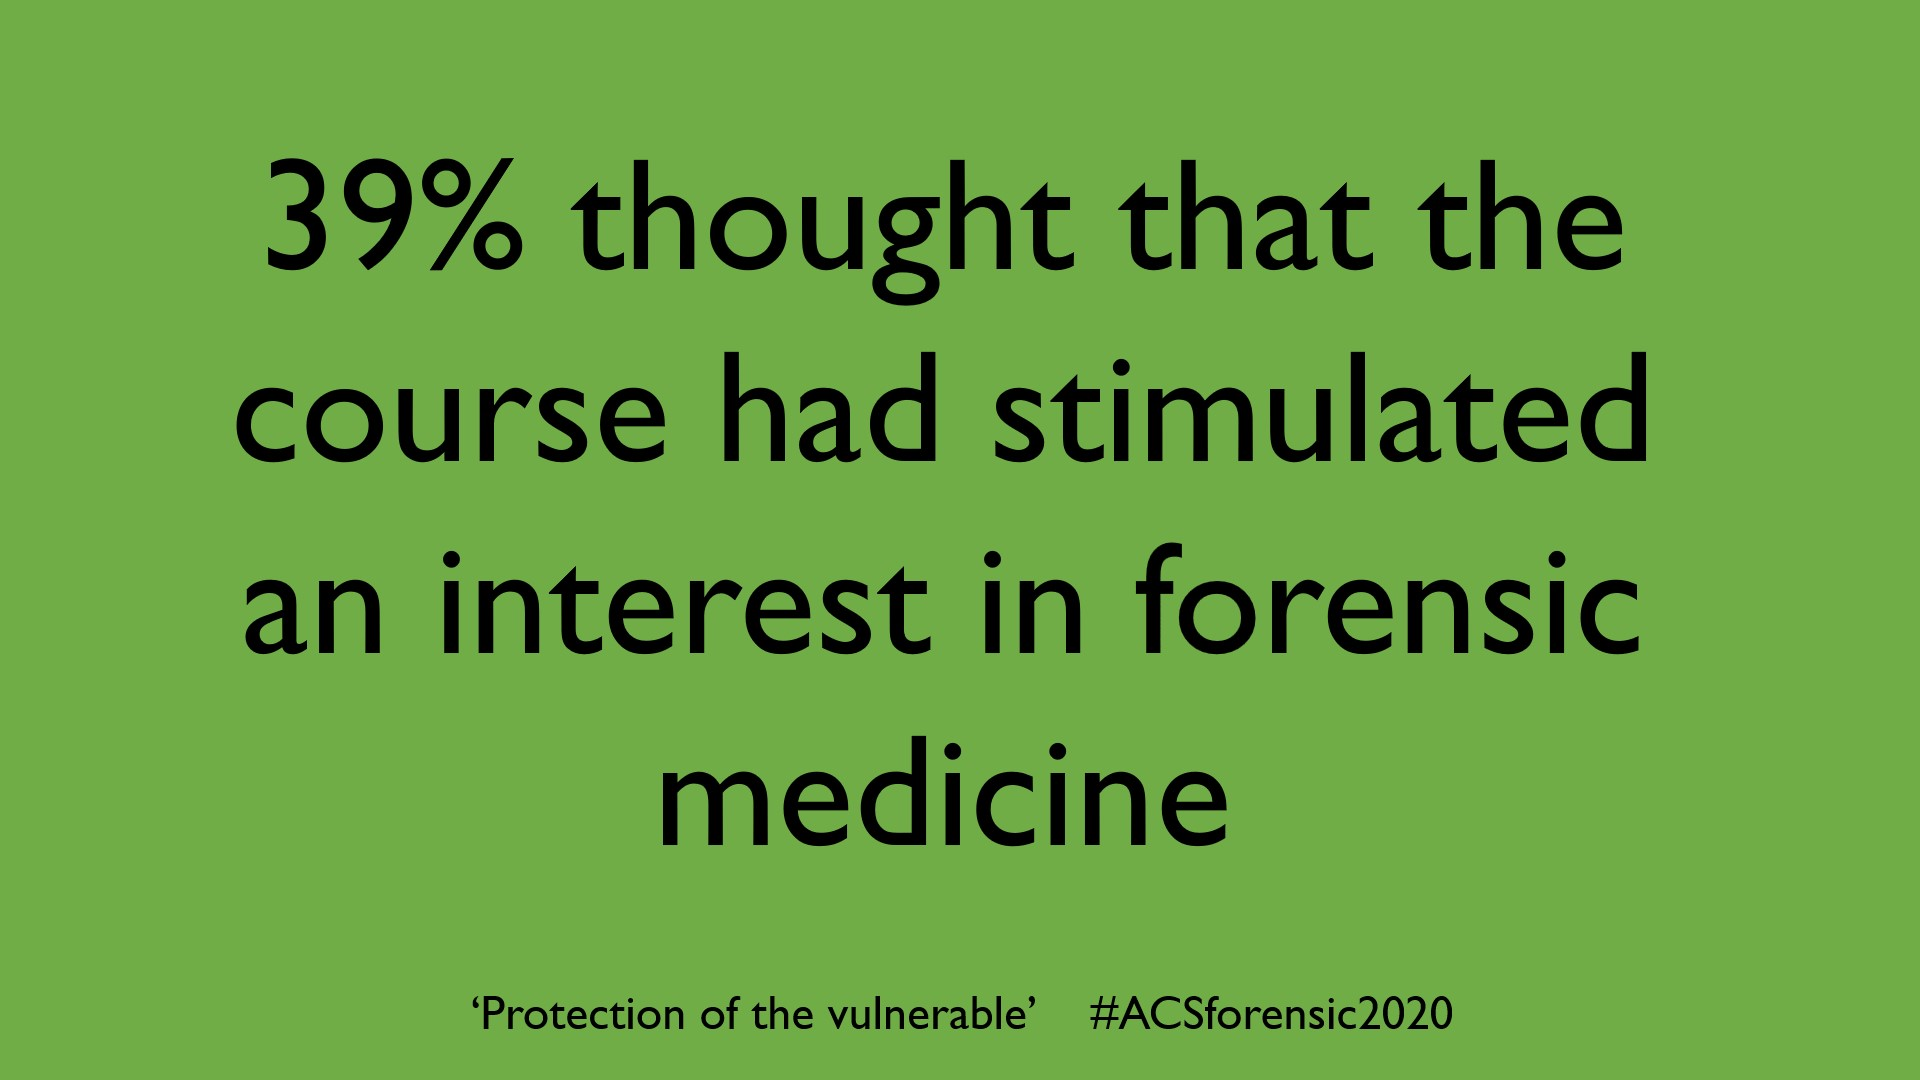 39% of student respondents said that this course on #safeguarding the vulnerable stimulated an interest in a career in #forensic medicine/#pathology 👍  #PathTwitter #Careers #MedEd @BMACymru @TheBMA @FFLMUK @RCollEM @RCPath @RCPCHtweets #ACSforensic2020  3/ https://t.co/3yM18FaKoT